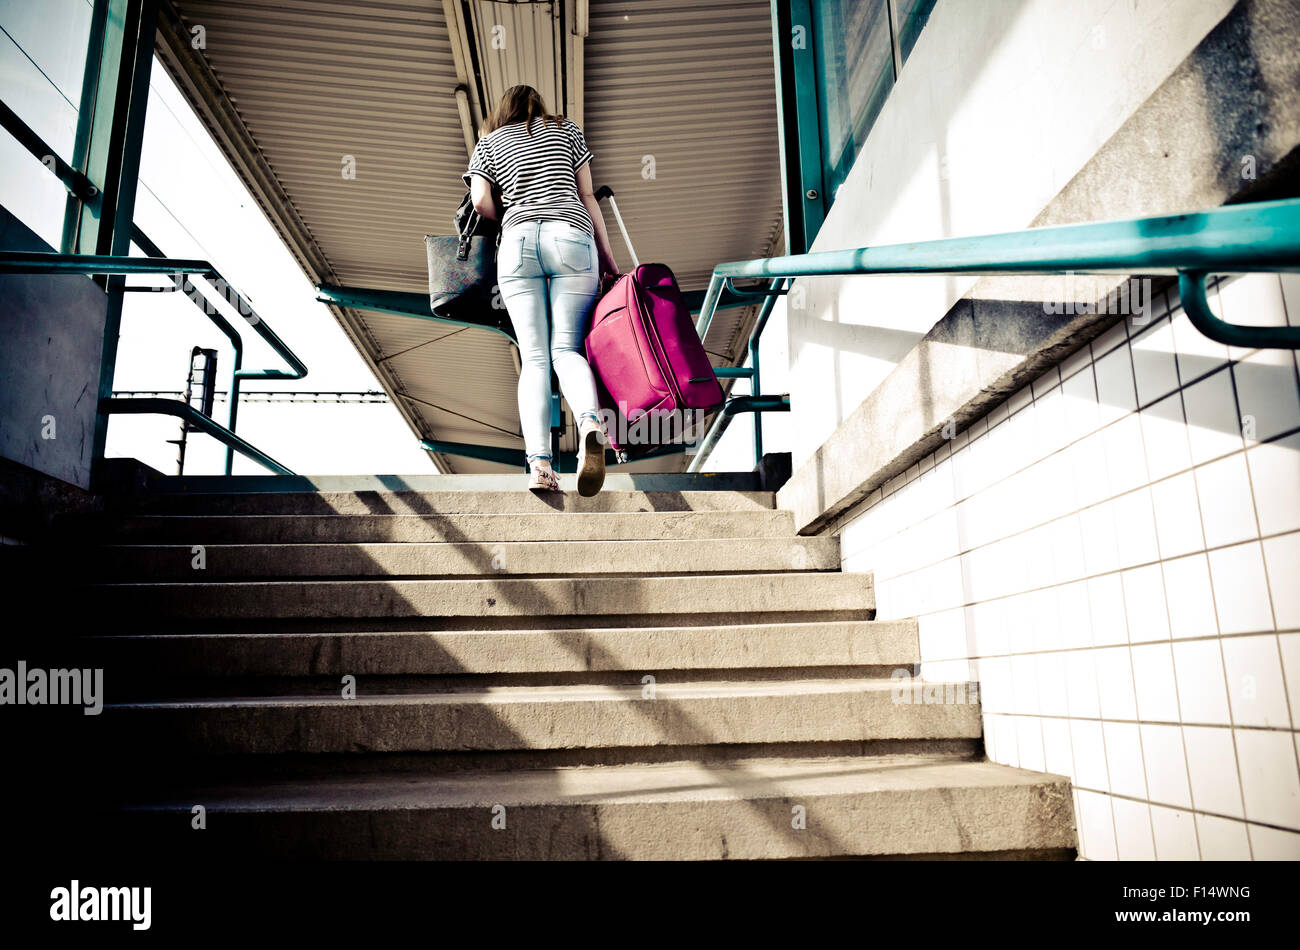 woman stepping on stairs with luggage at train station - Stock Image